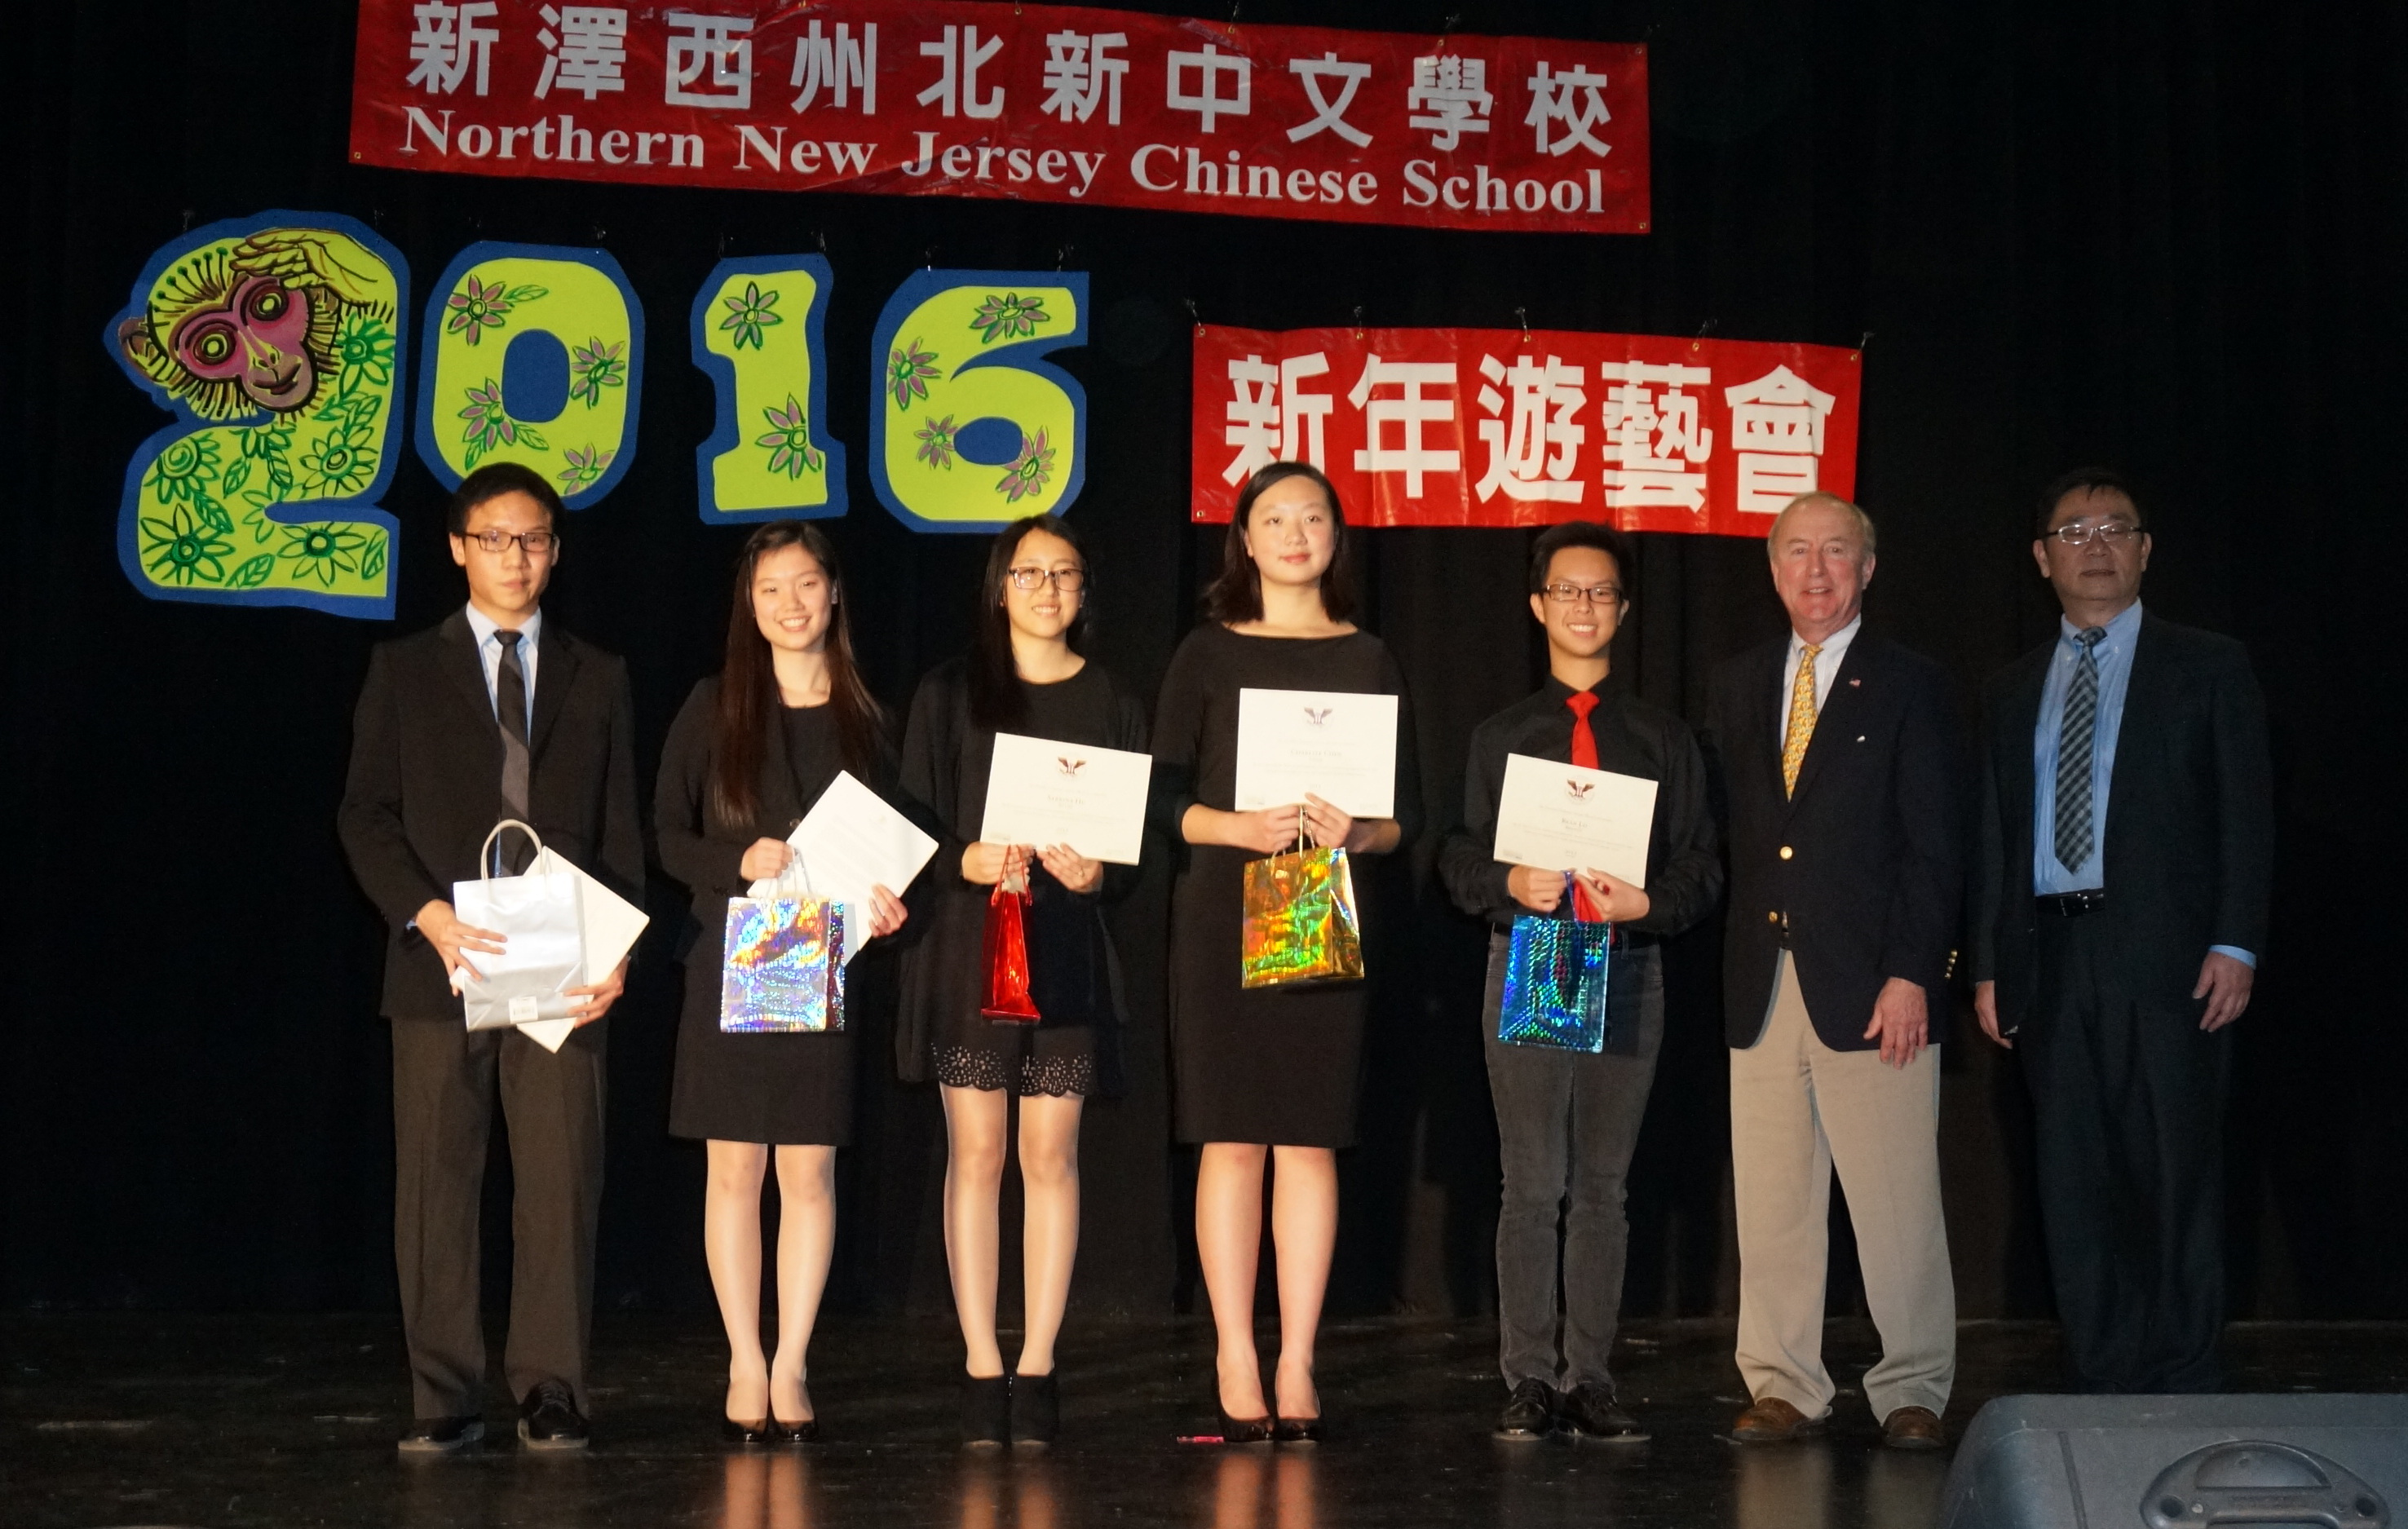 Chinese School Students Receive Presidential Honors Via Congressman